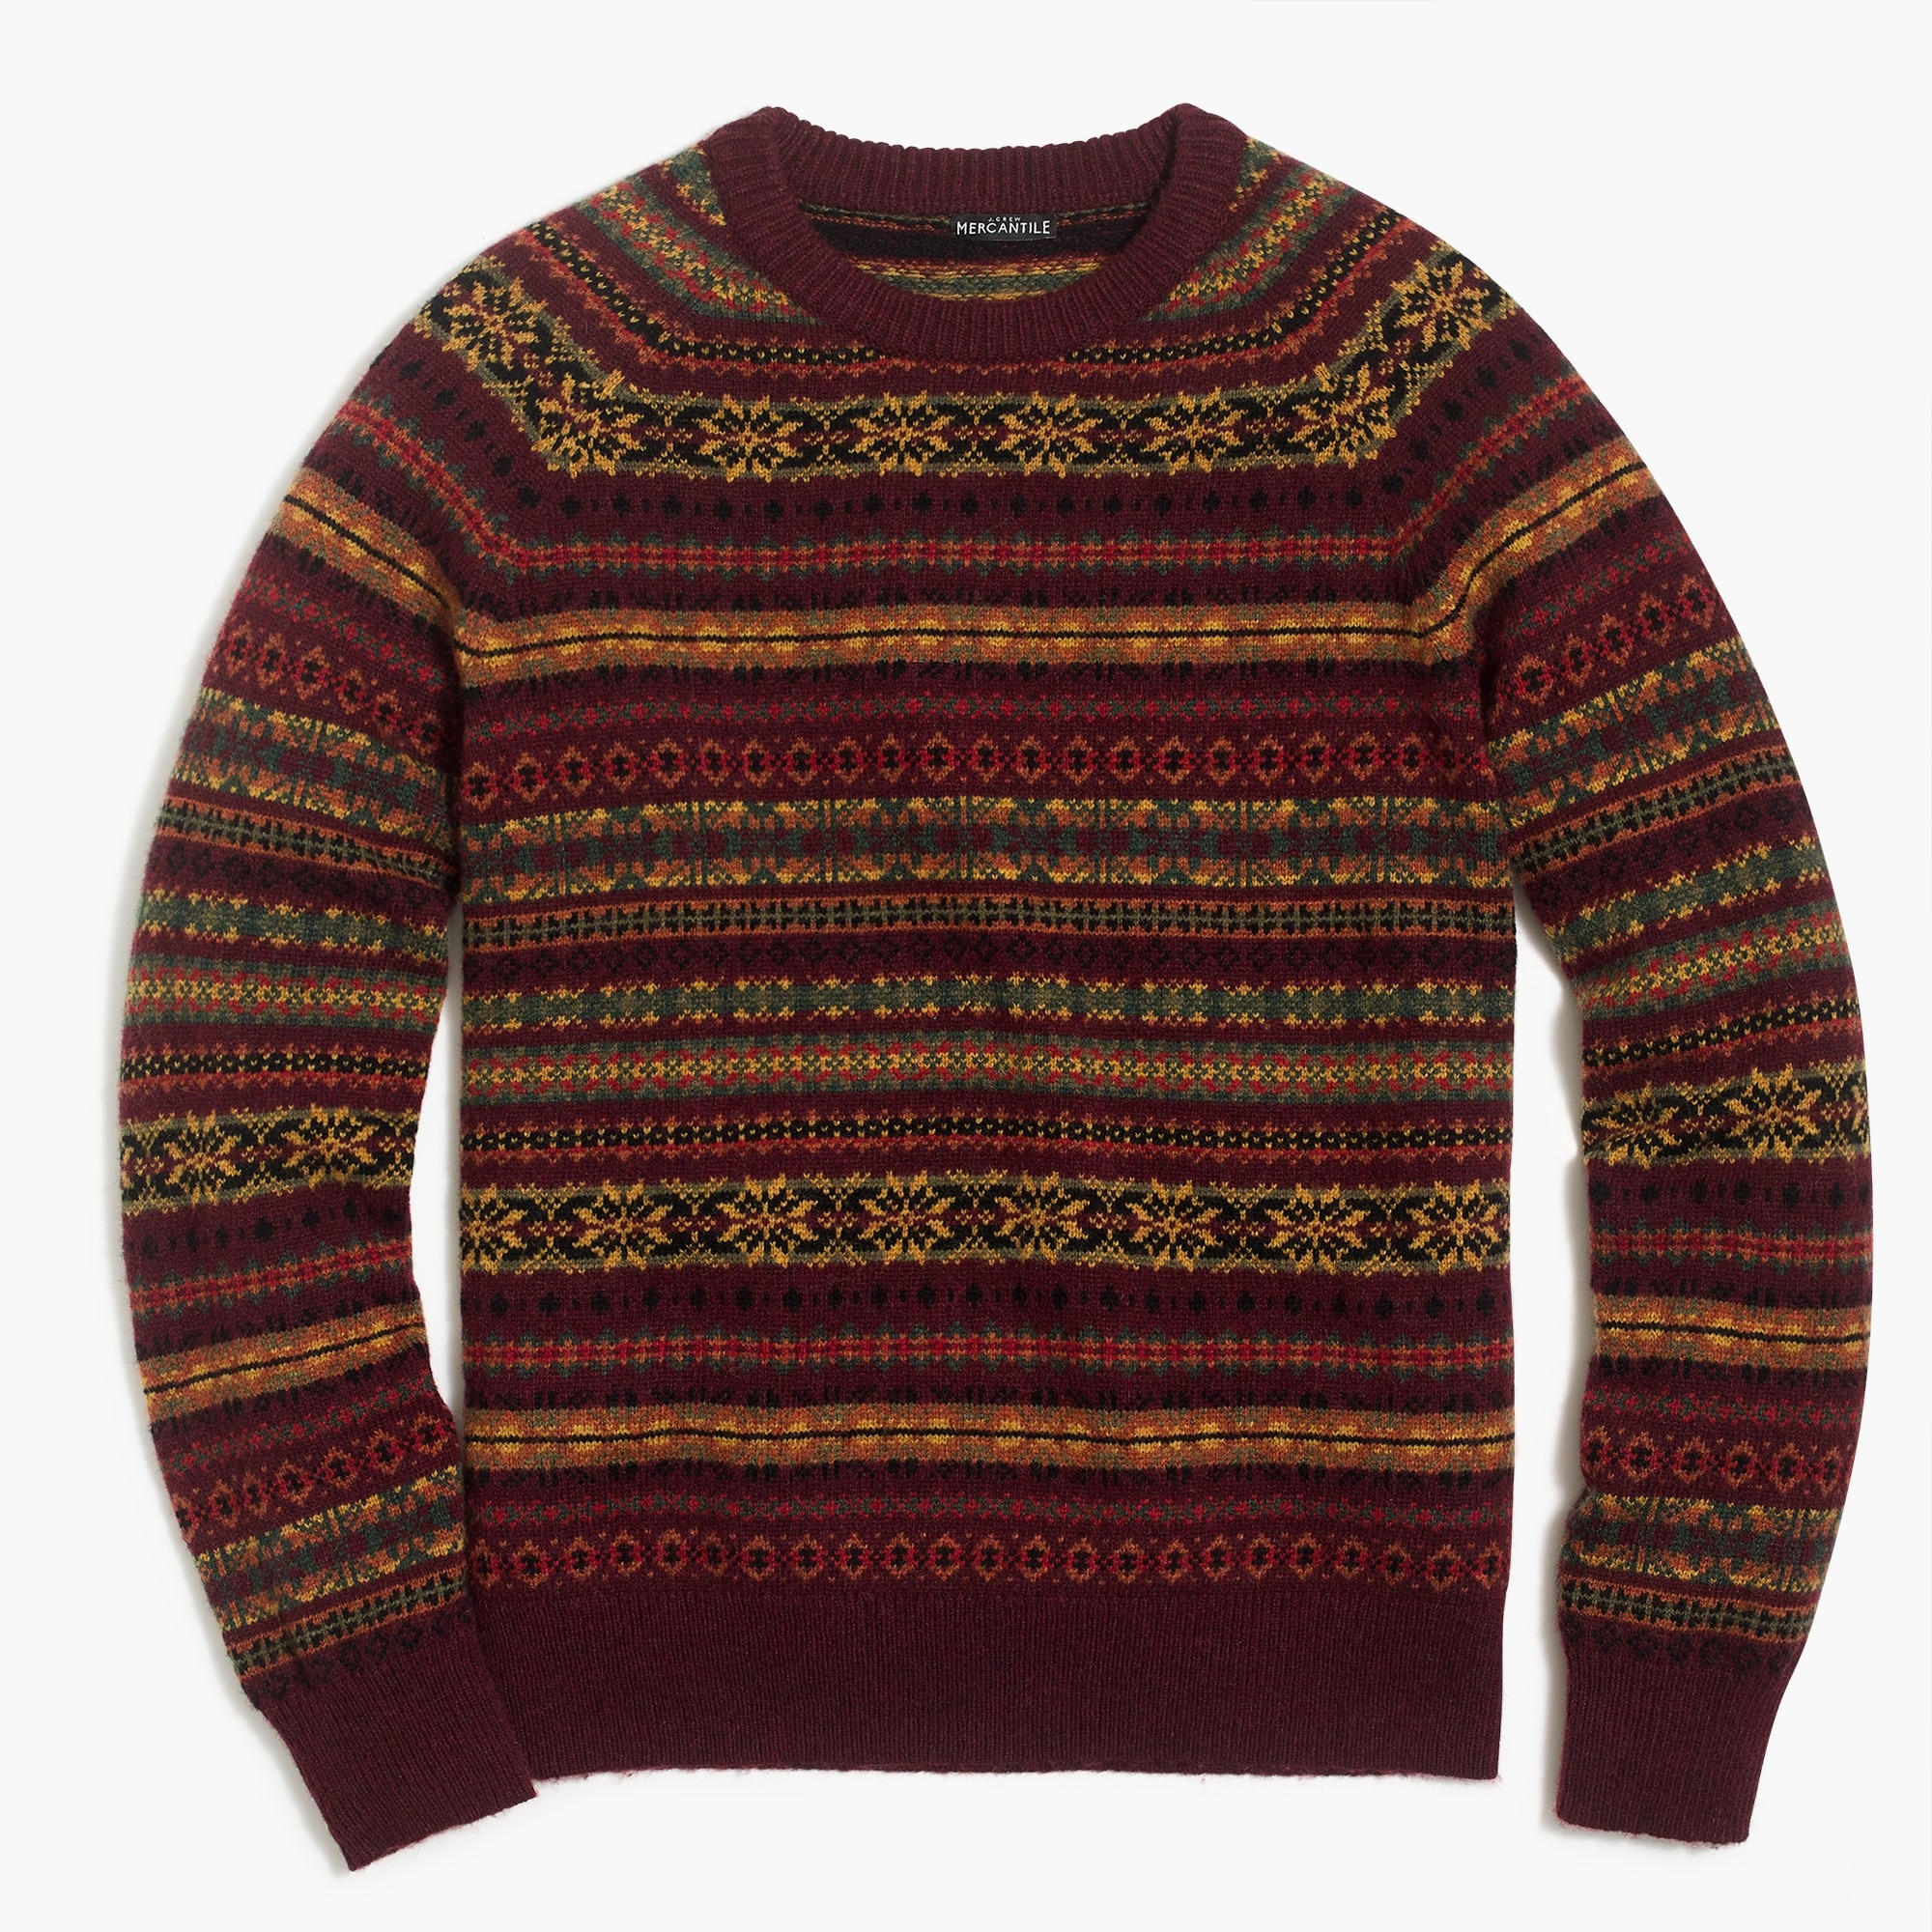 Fair Isle Crewneck Sweater In Supersoft Wool Blend by J.Crew